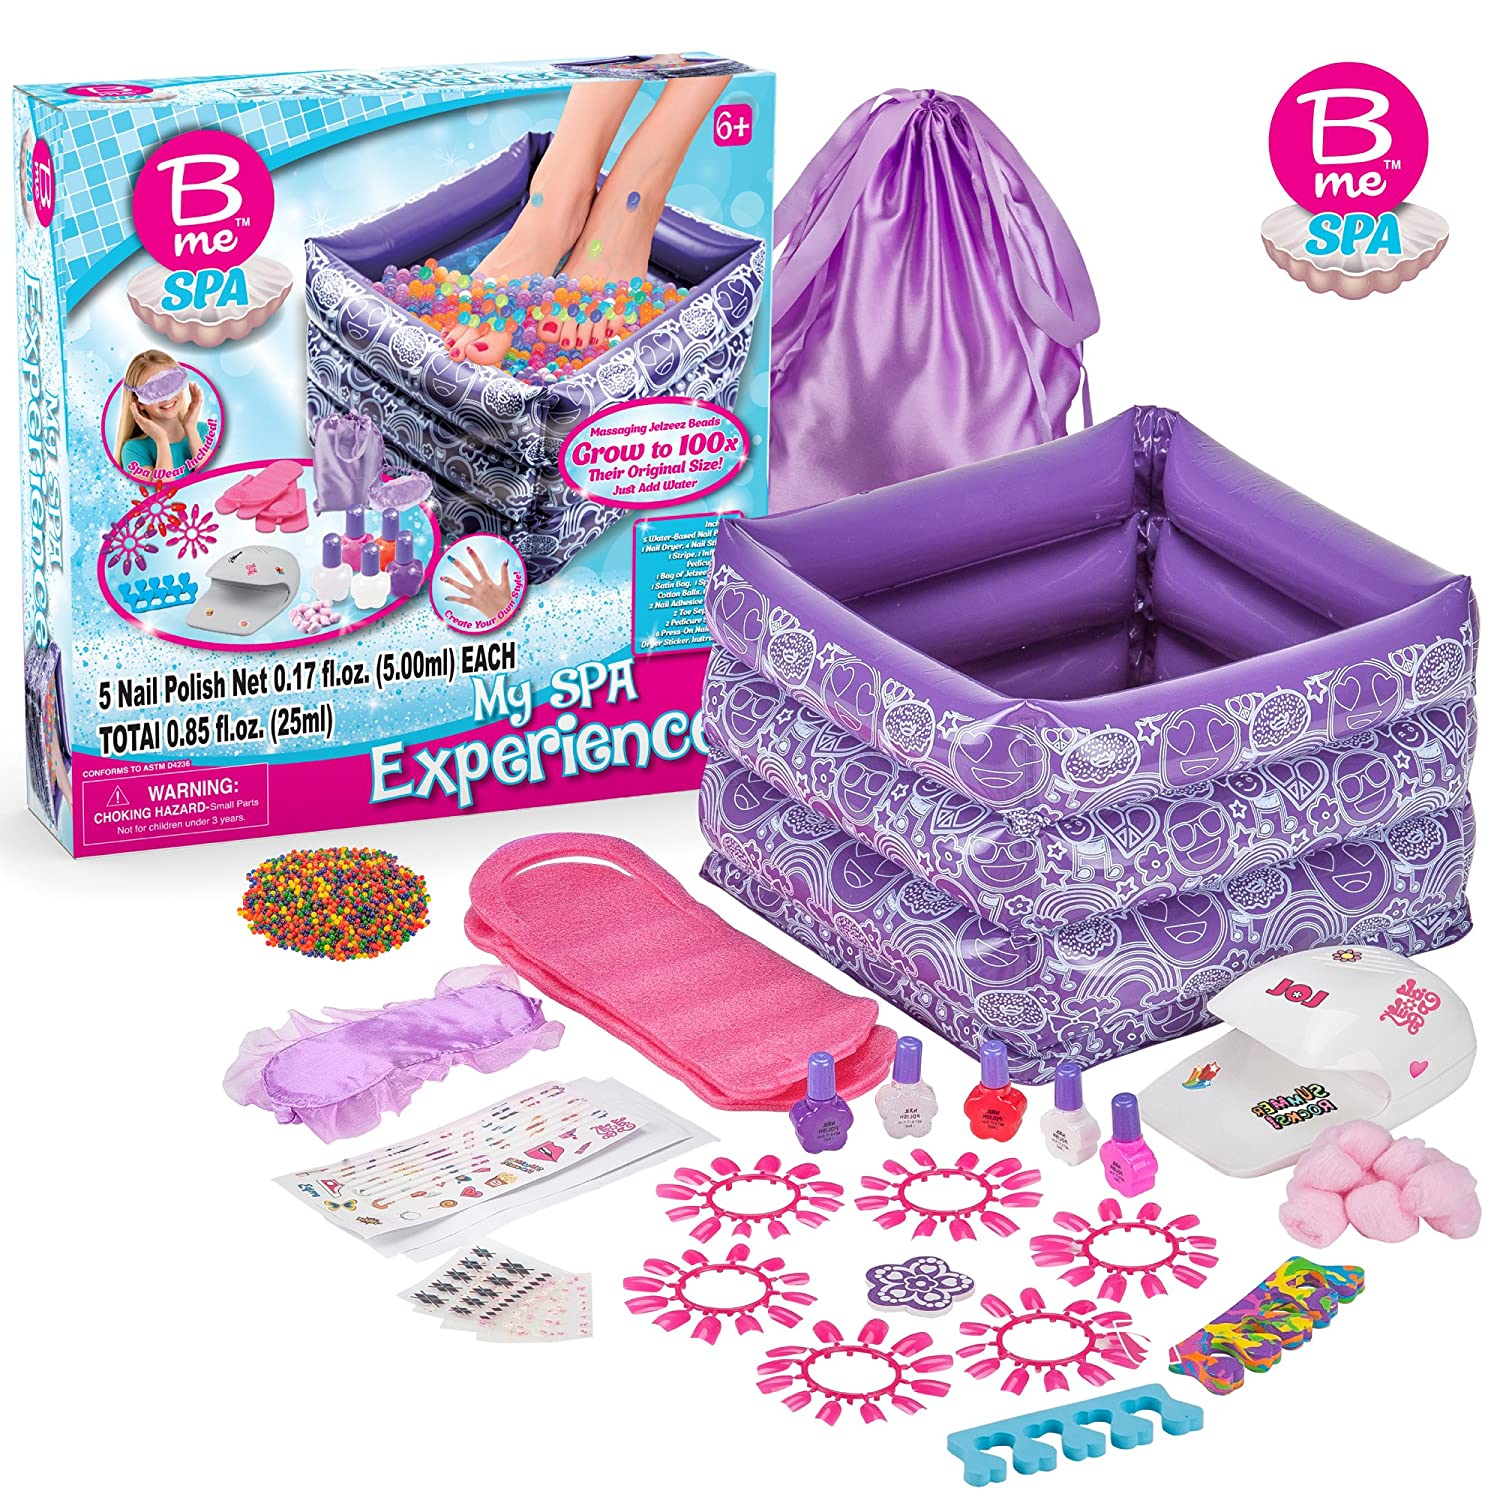 B Me My Spa Experience – Ultimate Kids Spa Kit w/ Nail Polish, Press On Nails, Nail Dryer, Stickers, Decals, Pedicure Pool, Bath Beads, Mask, Slippers, Satin Storage Bag & More – Recommended 6+ Creative Kids